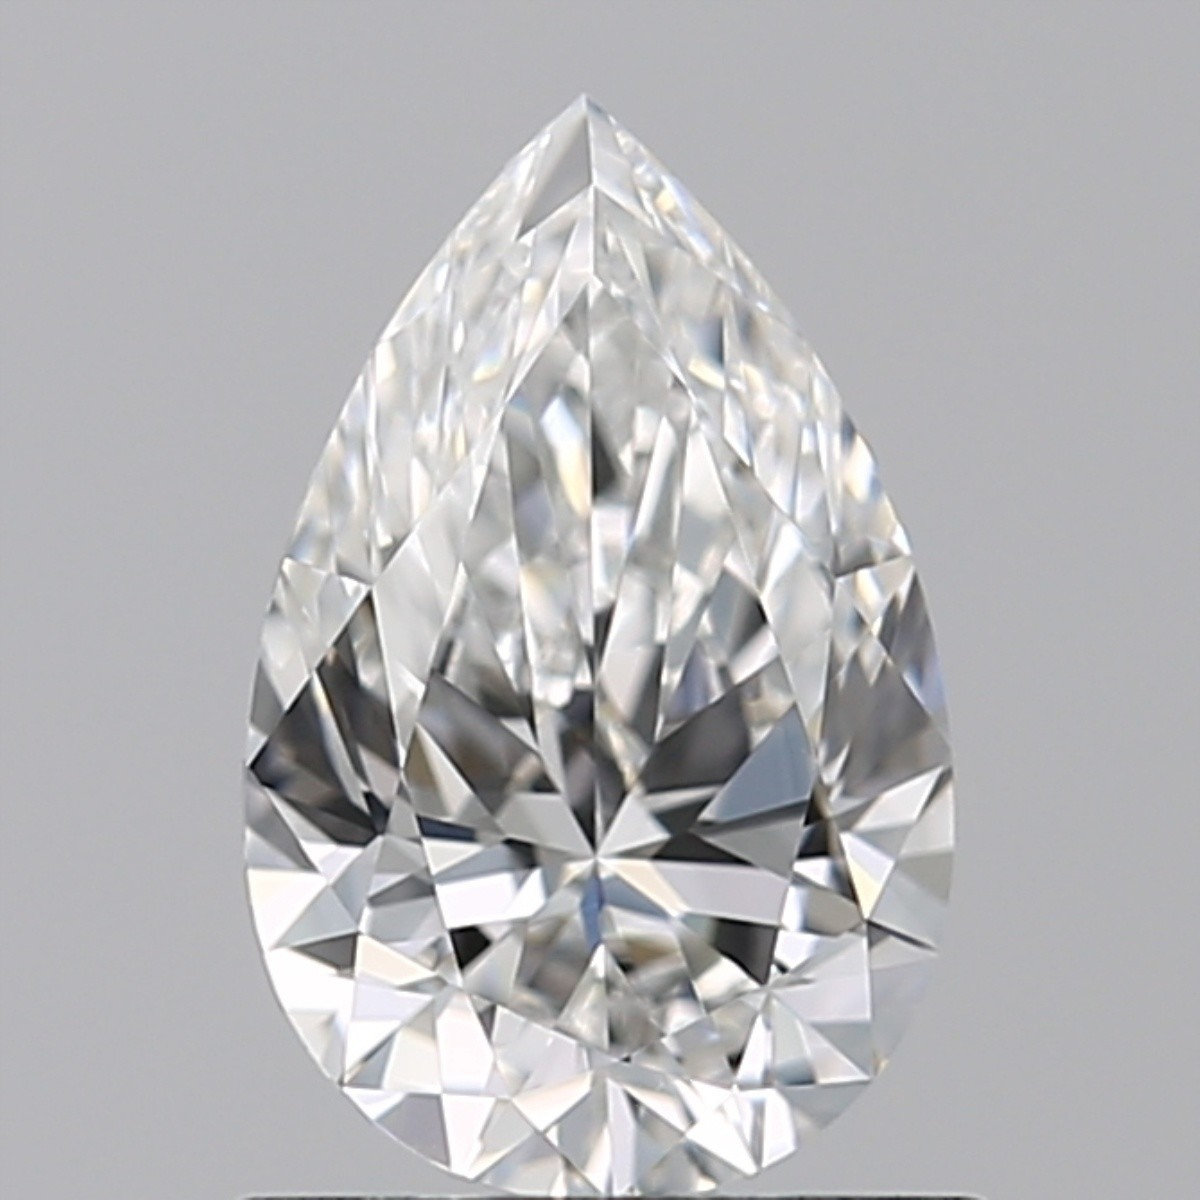 0.75 Carat Pear Diamond (E/IF)